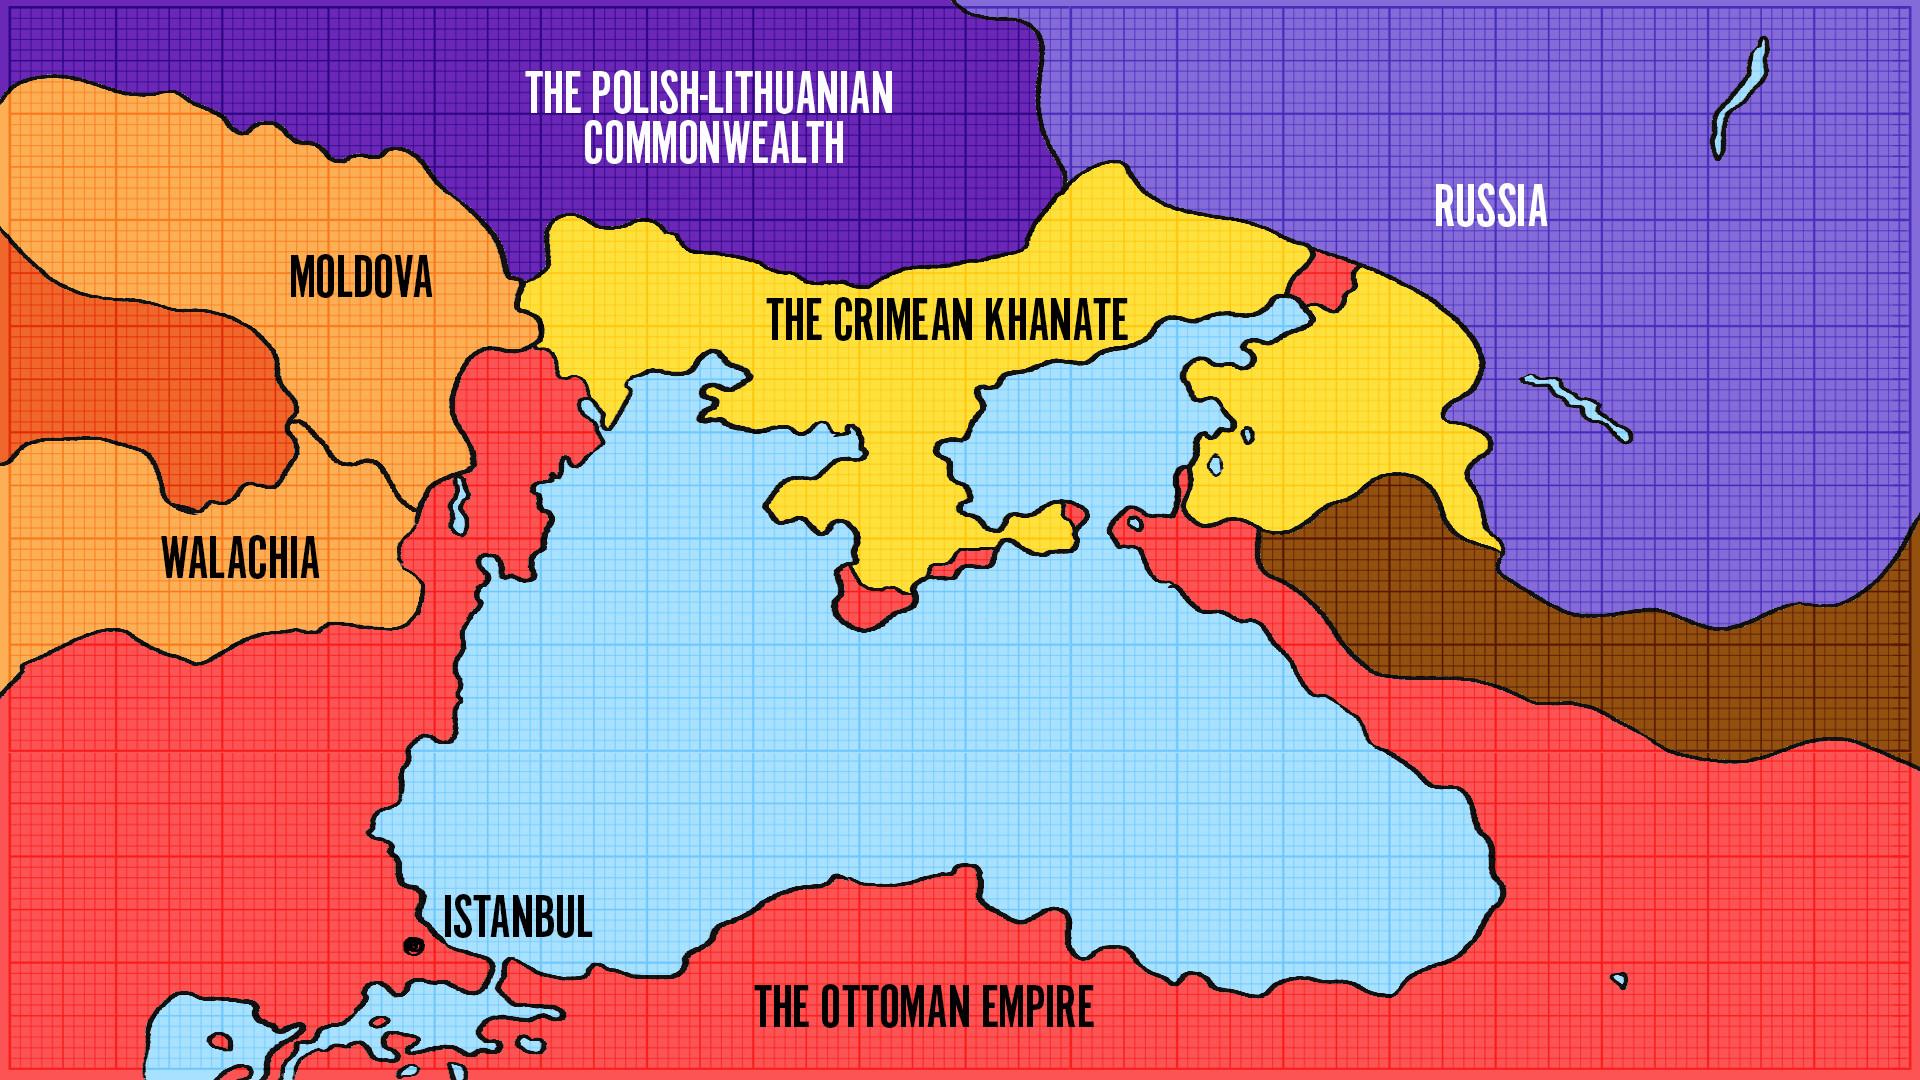 From South, Crimea was surrounded by the Ottoman Empire's lands